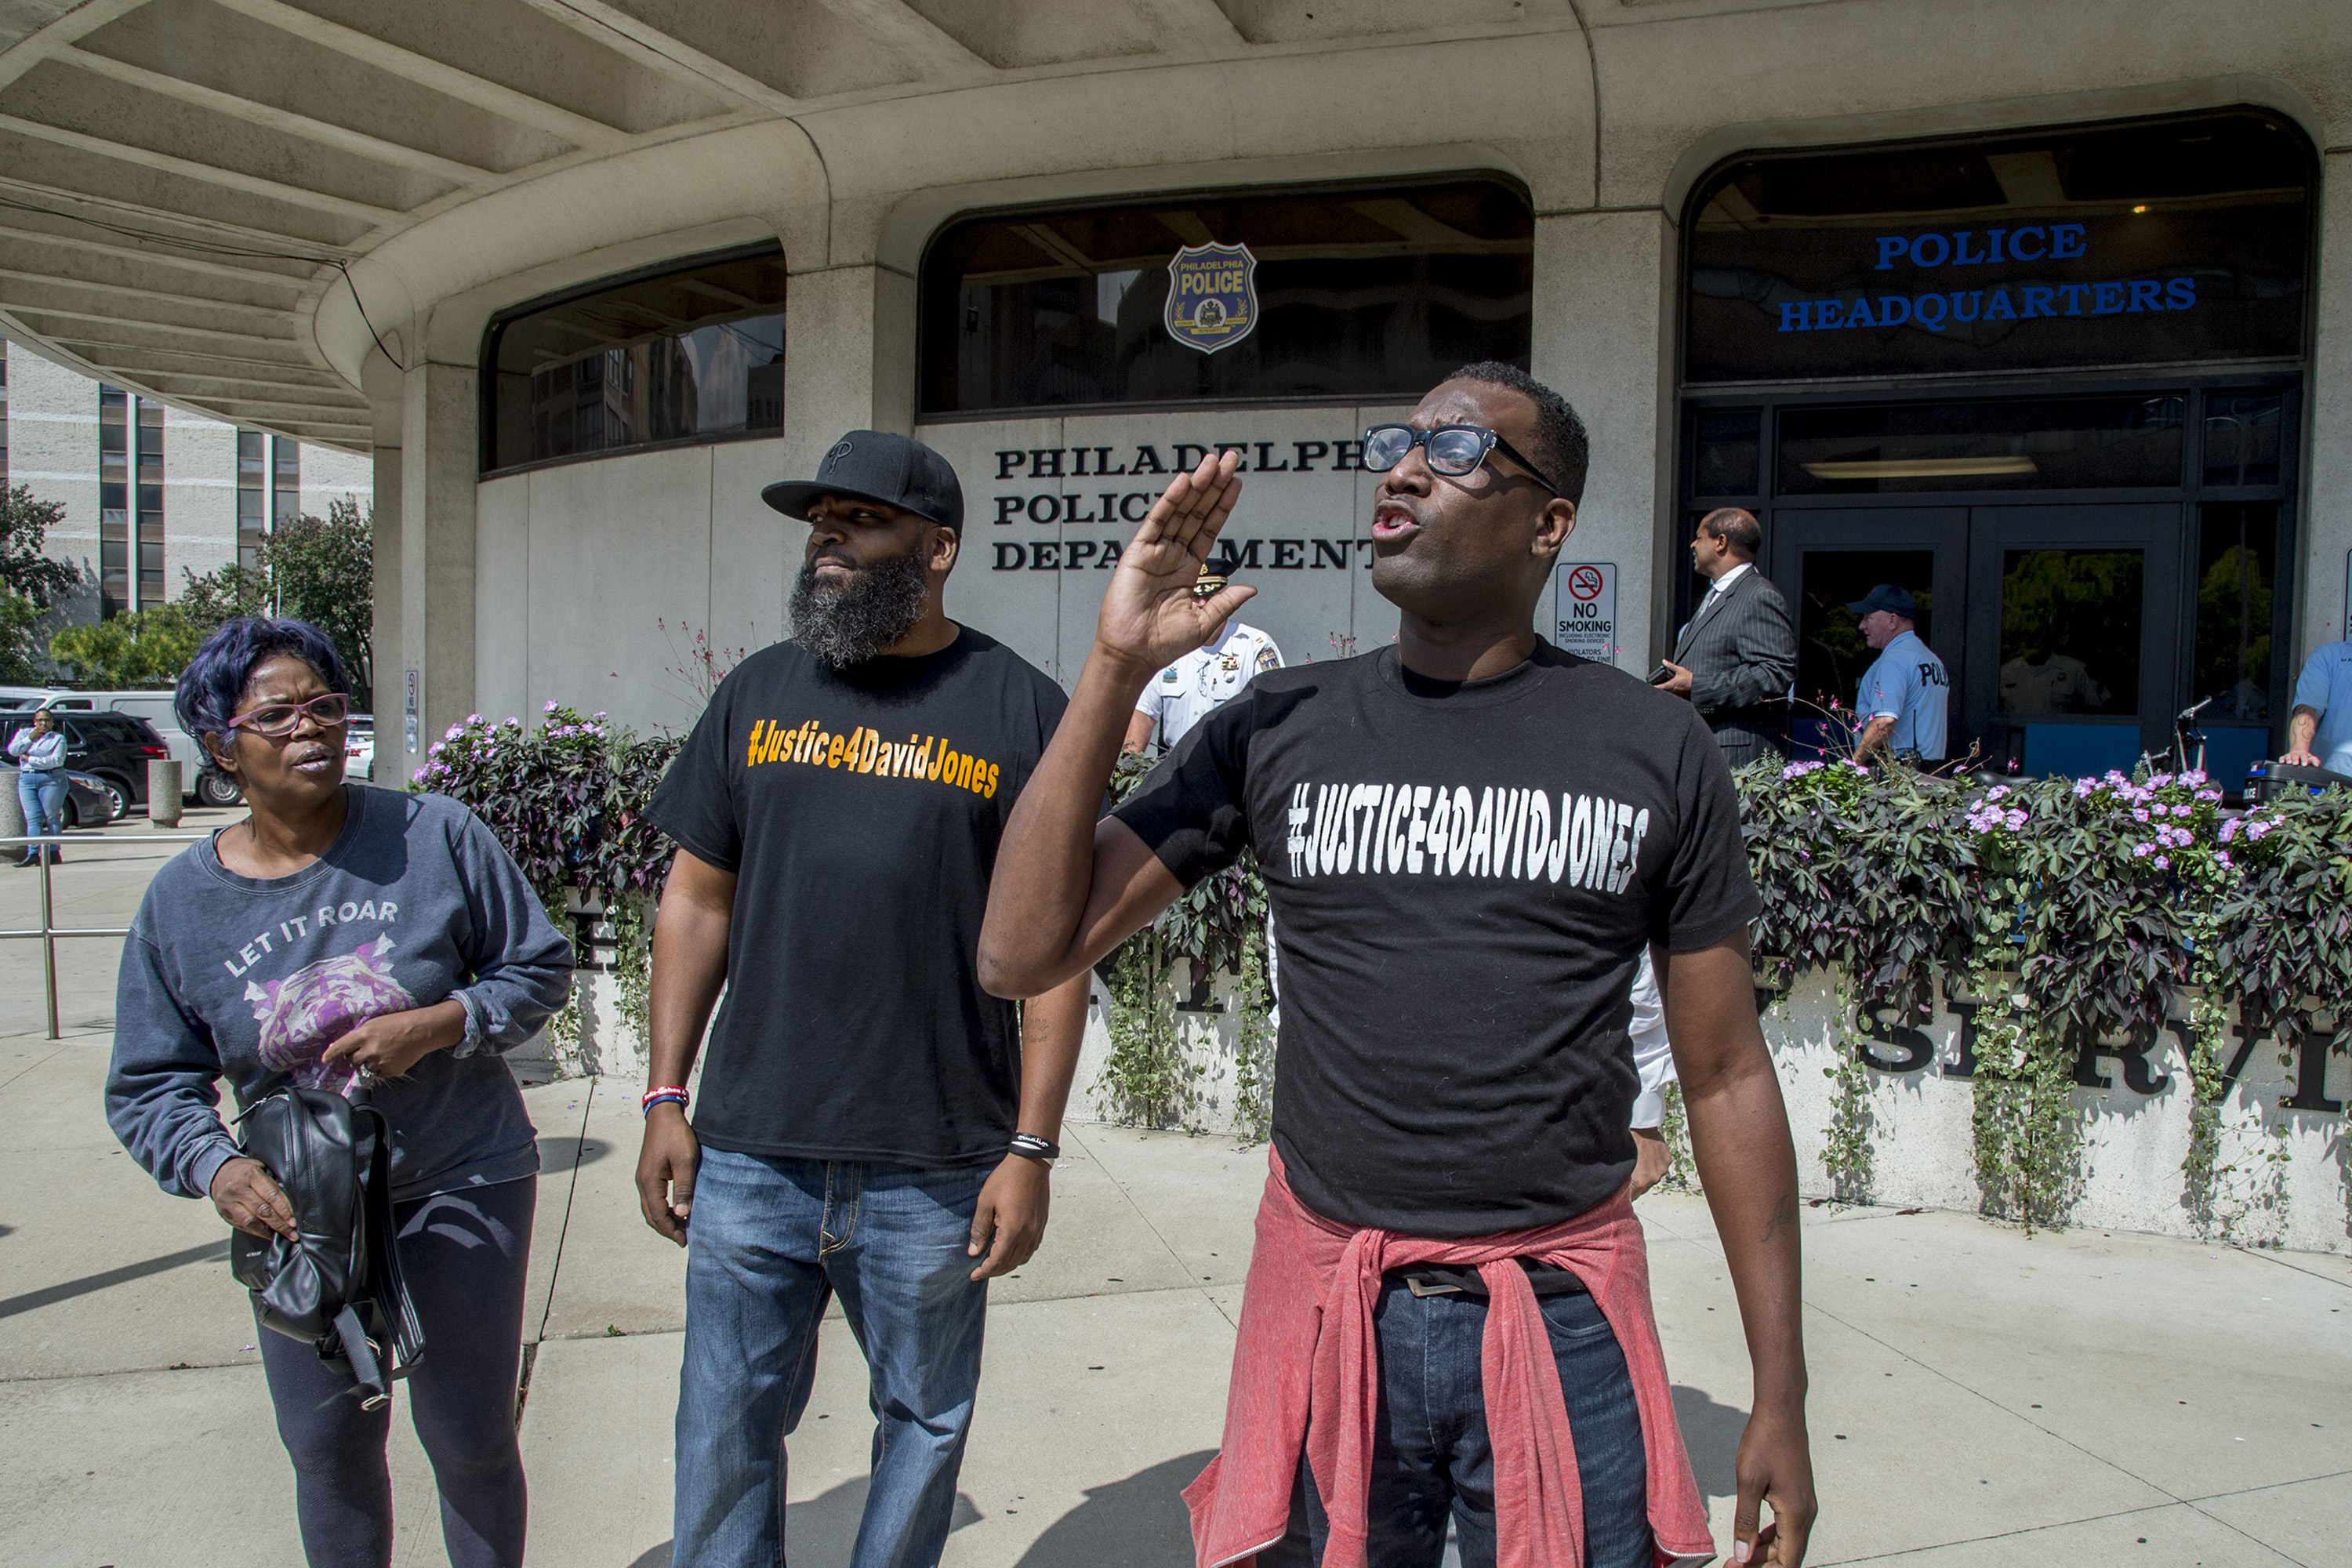 Activists (from left) Rowena Faulk, Isaac Gardner, and Asa Khalif demonstrate outside Police Headquarters after the announcement of Officer Ryan Pownall´s firing.